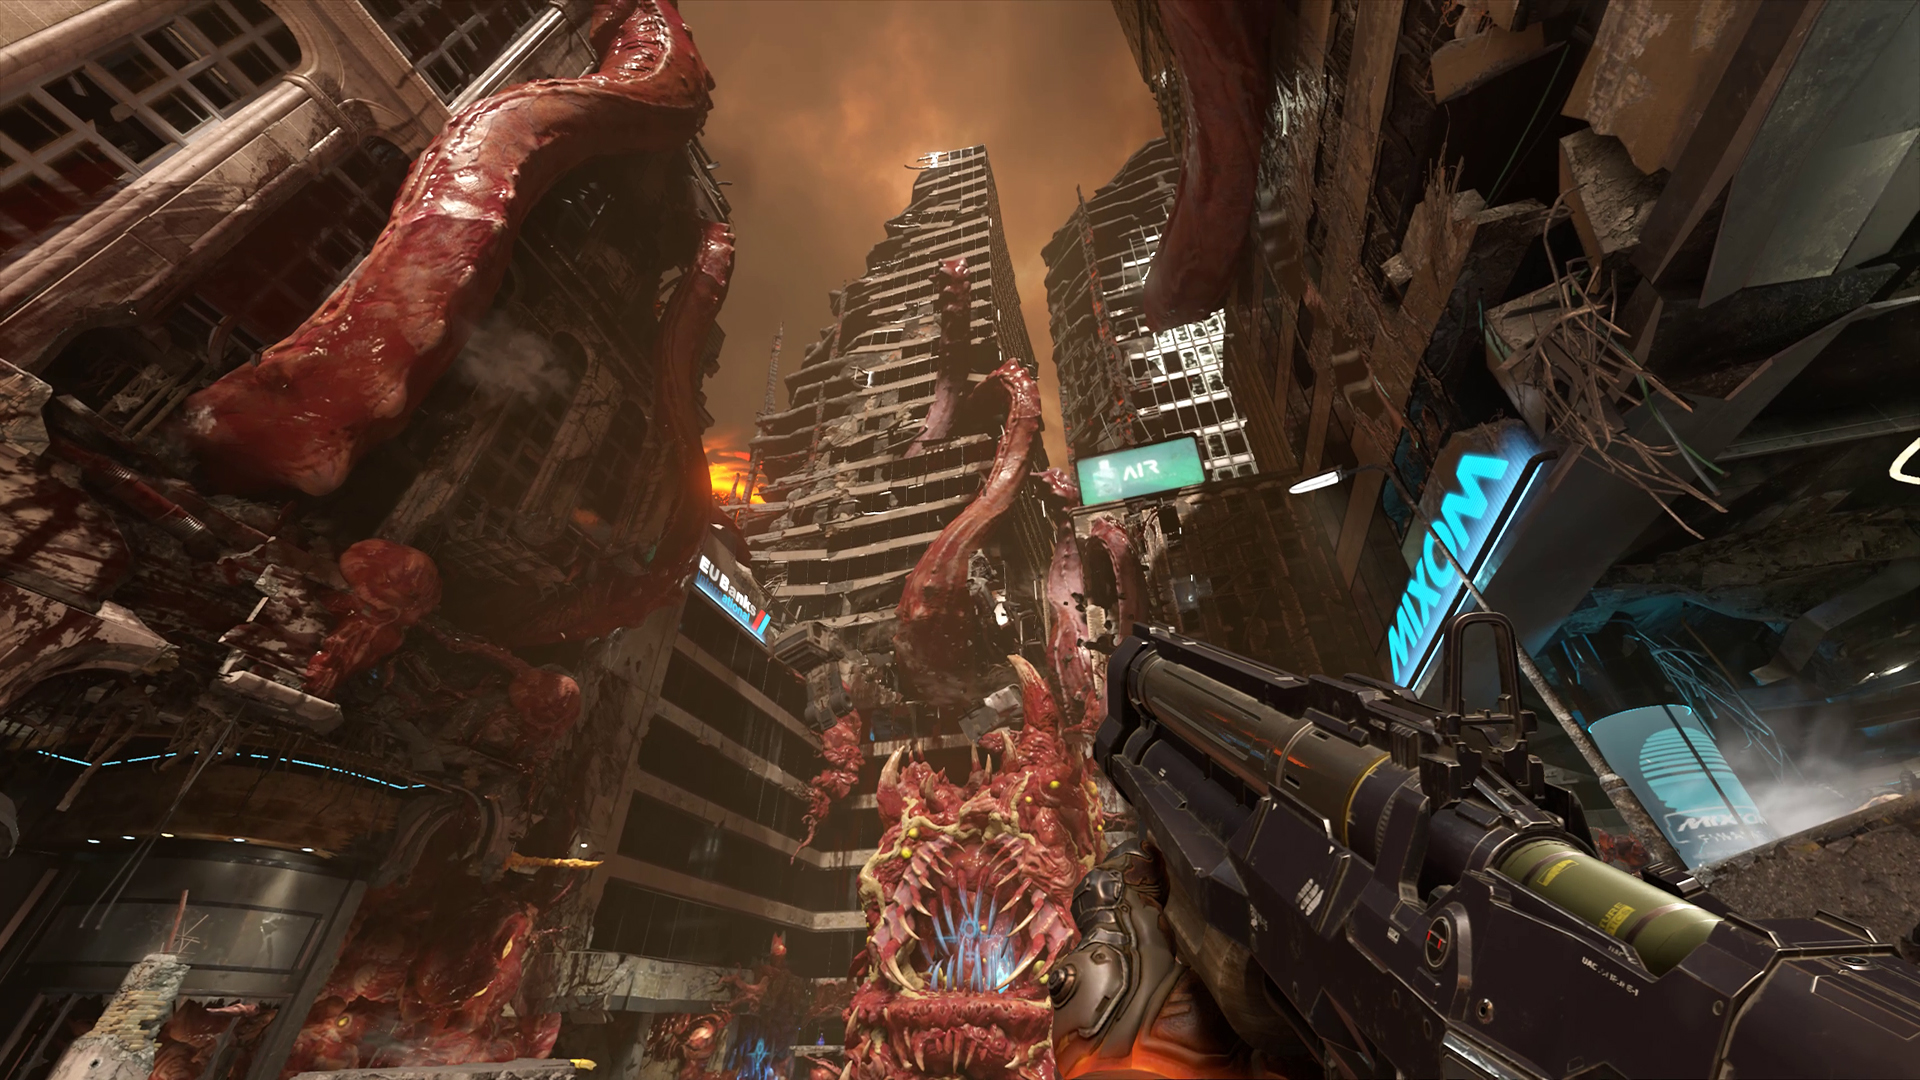 Doom Eternal has made over $450 million in revenue